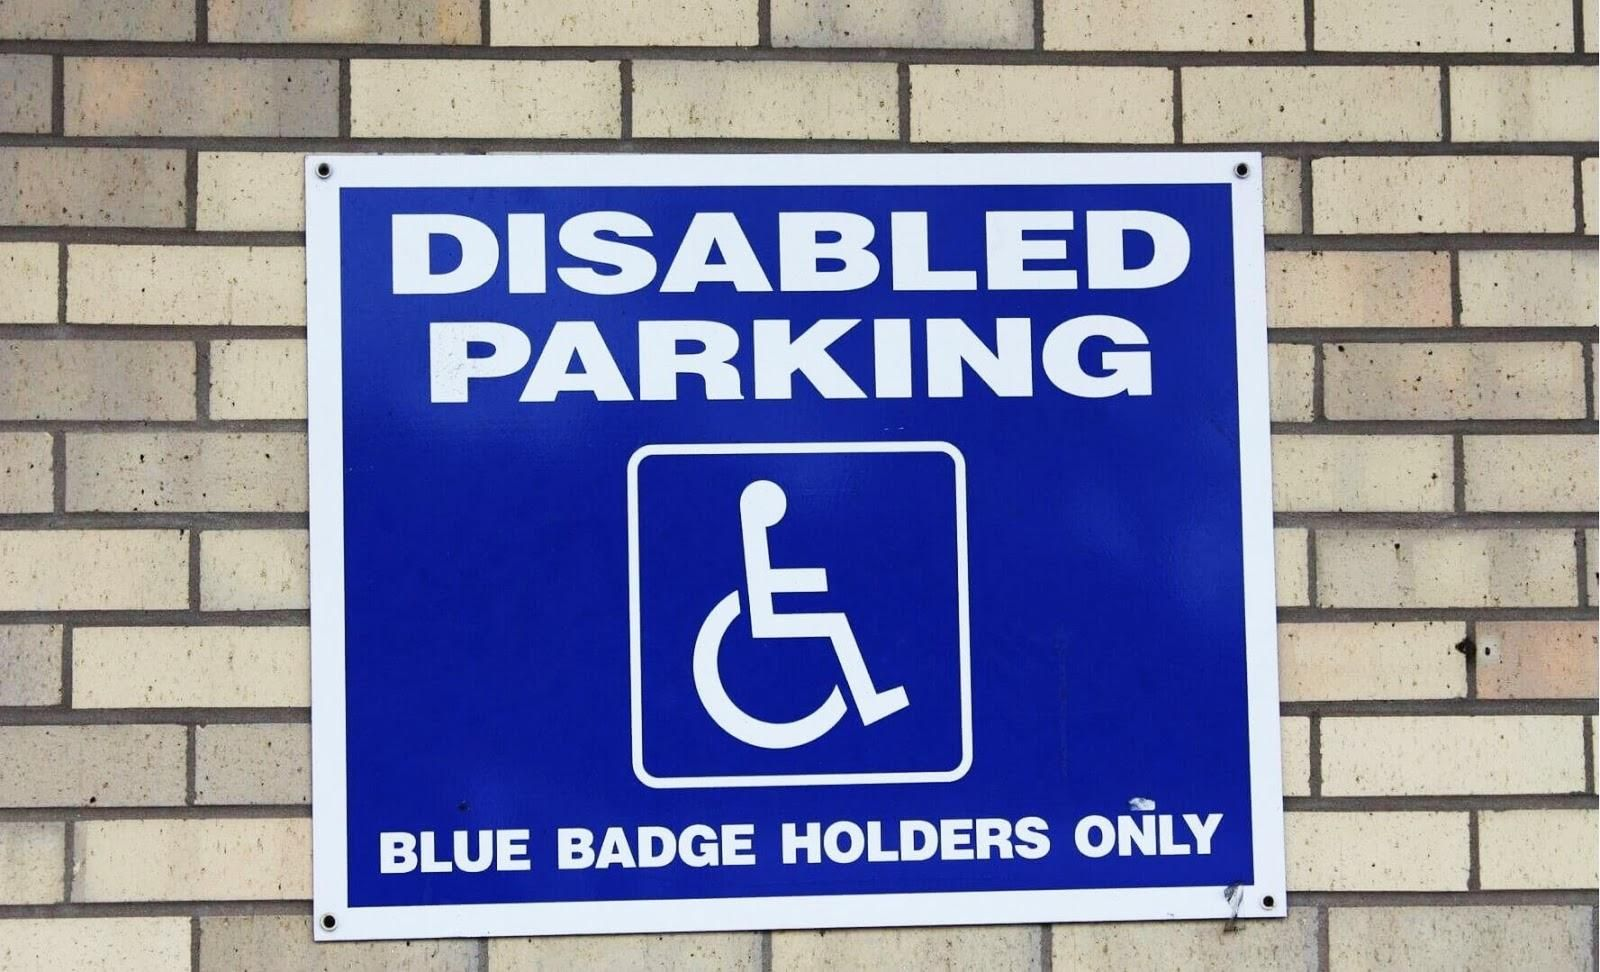 Picture of a disabled parking sign.